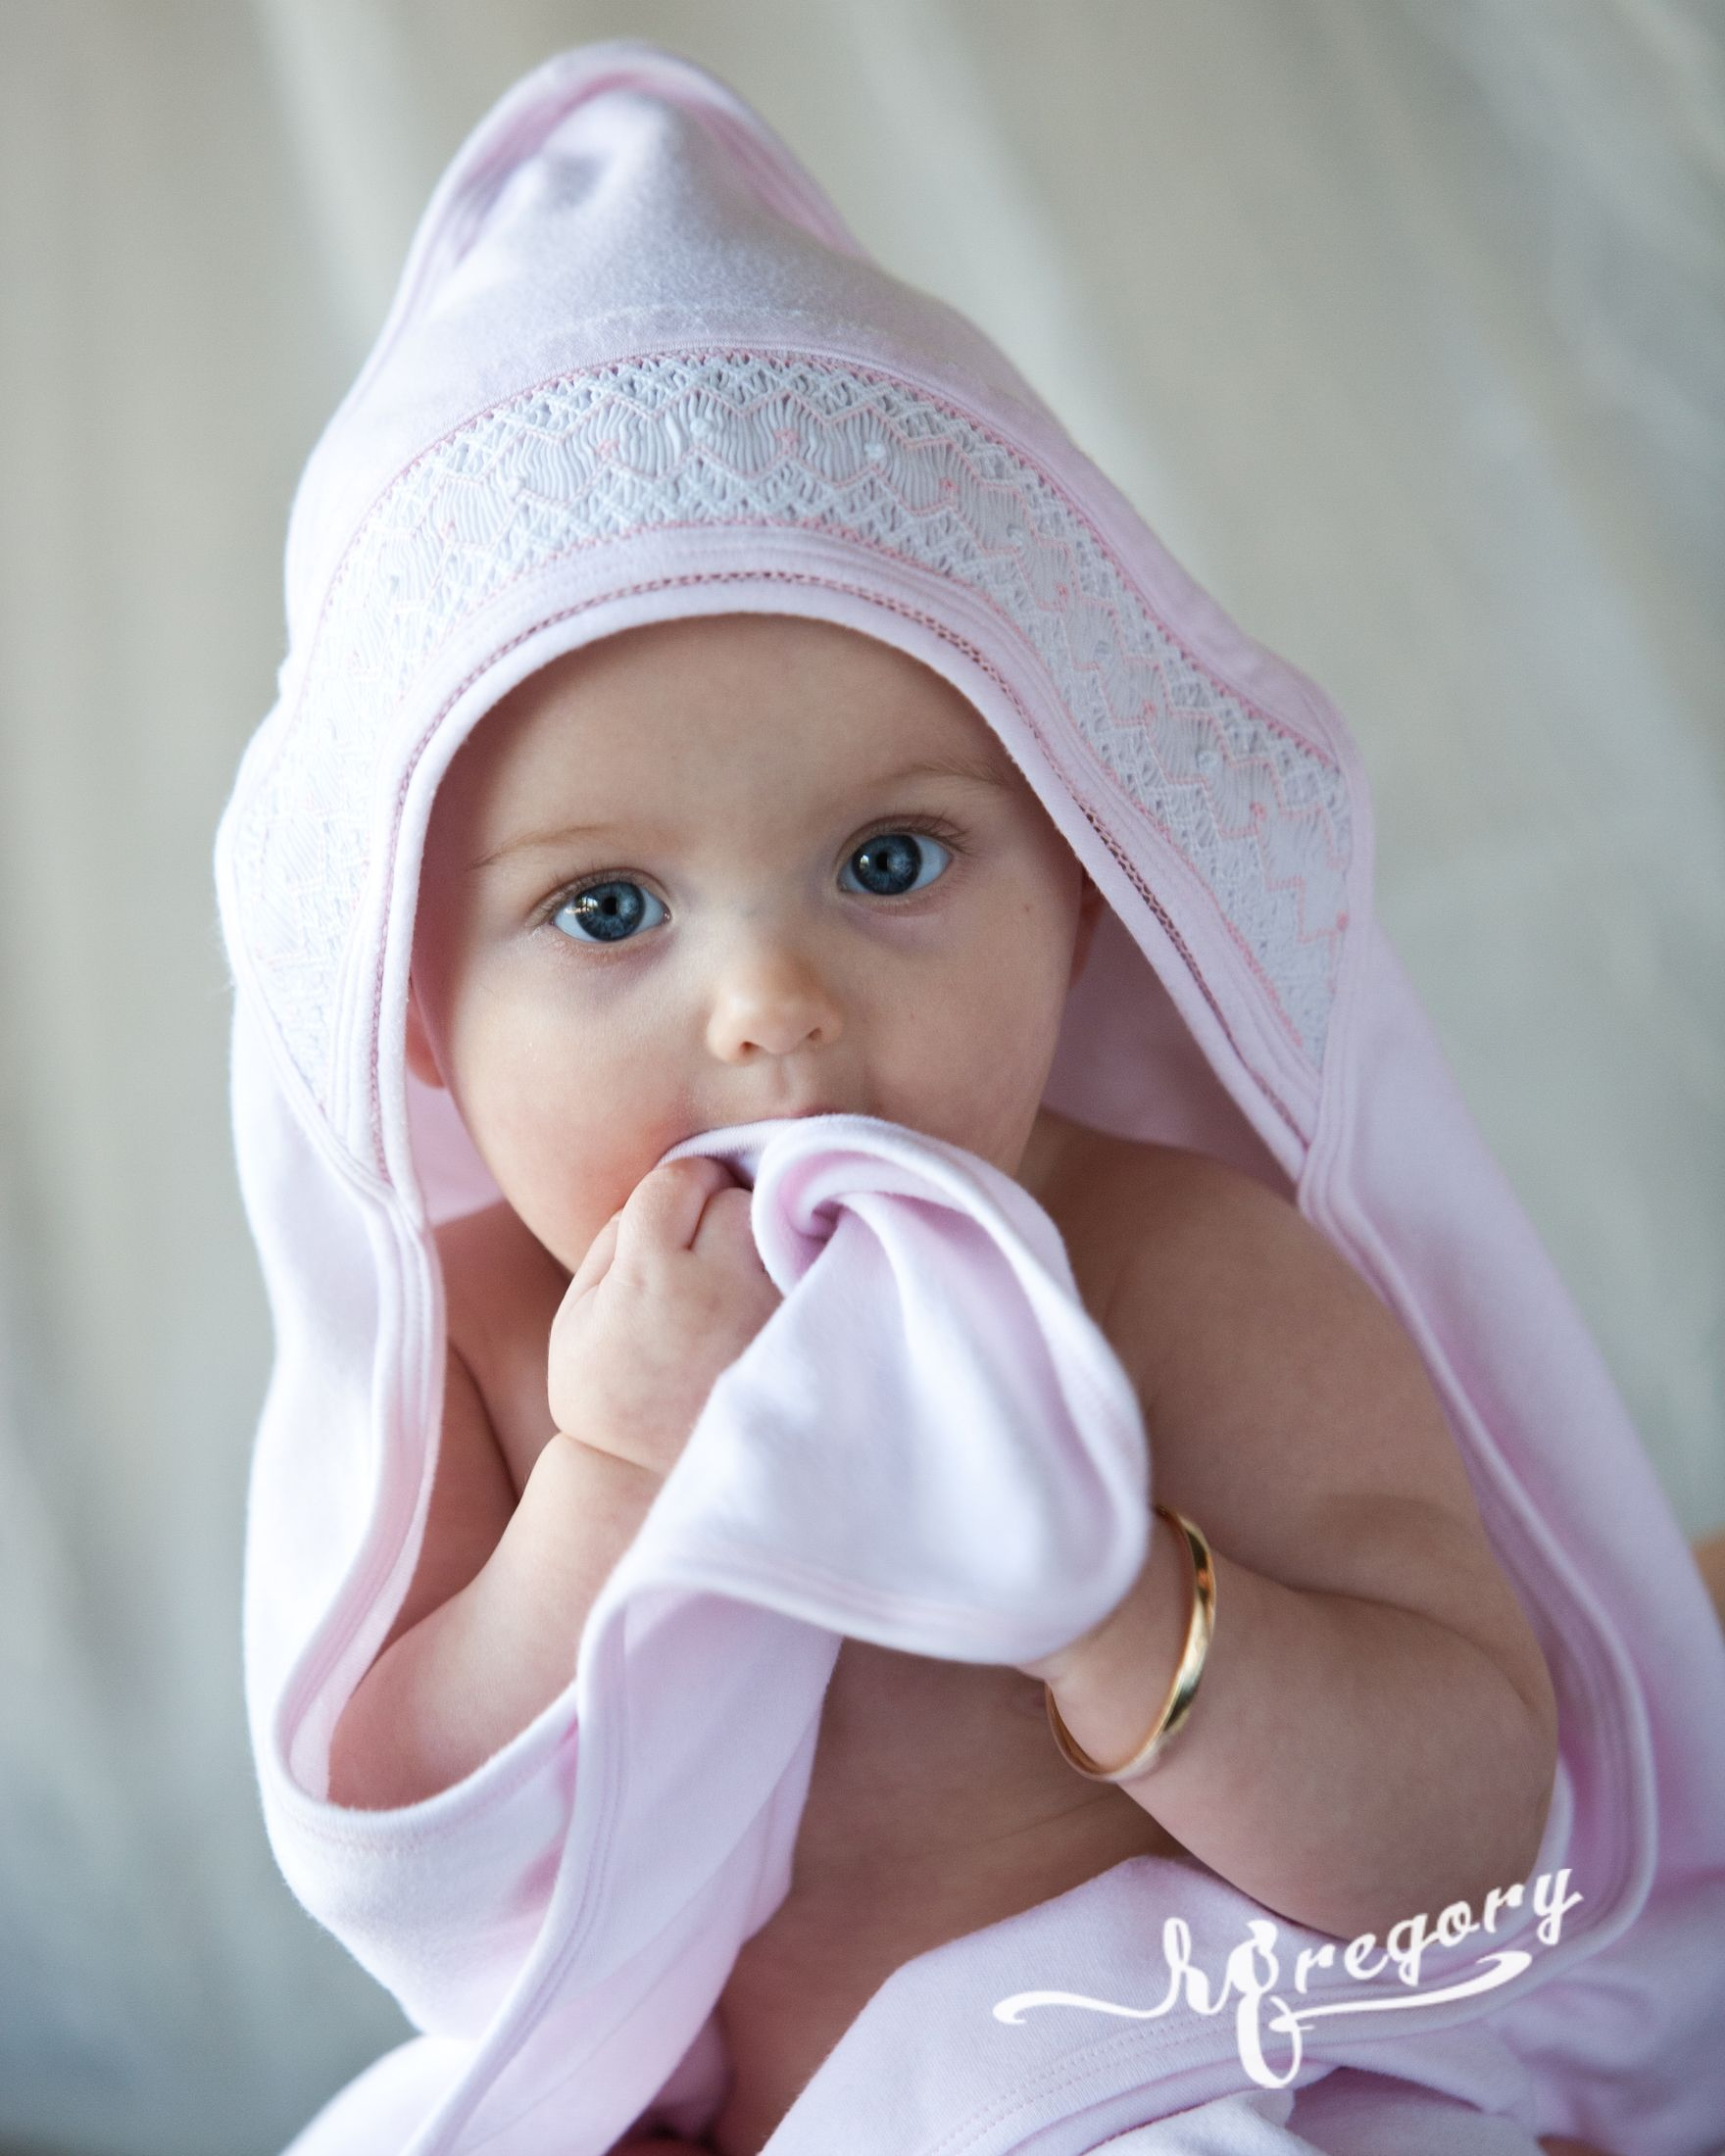 davis baby child photo with towel and bracelet